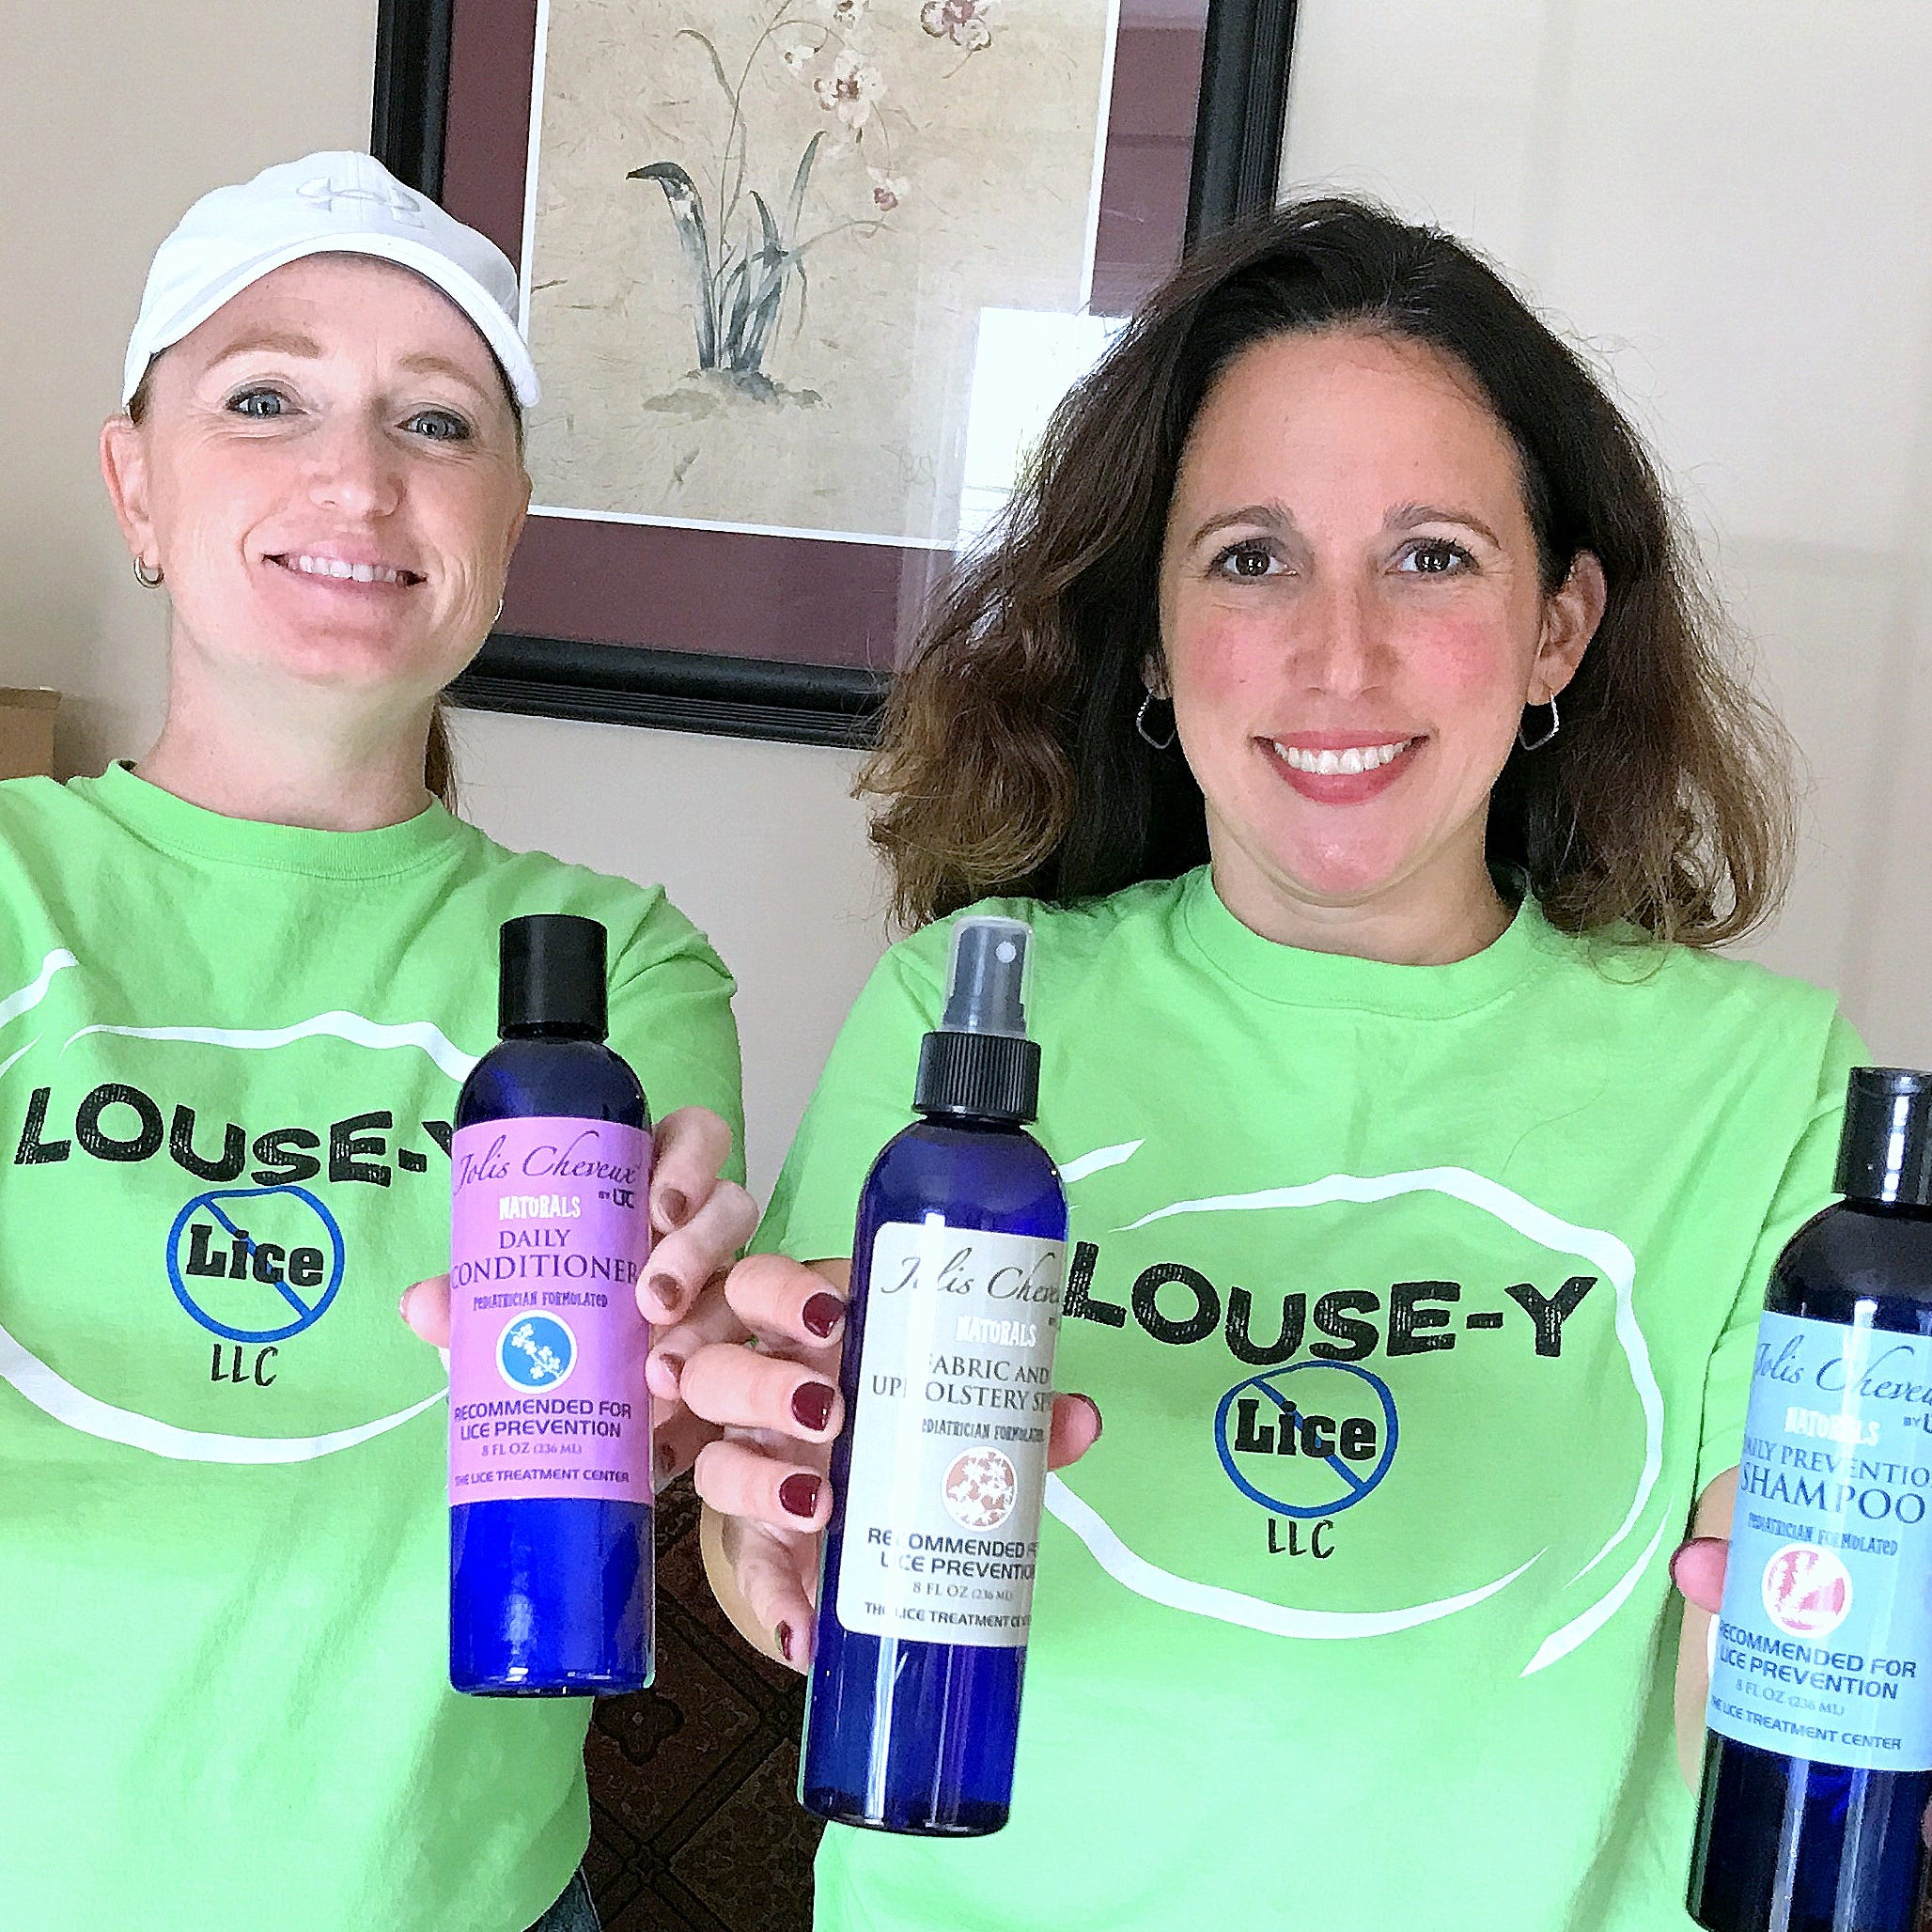 Horseheads business offers natural alternative in head lice battle